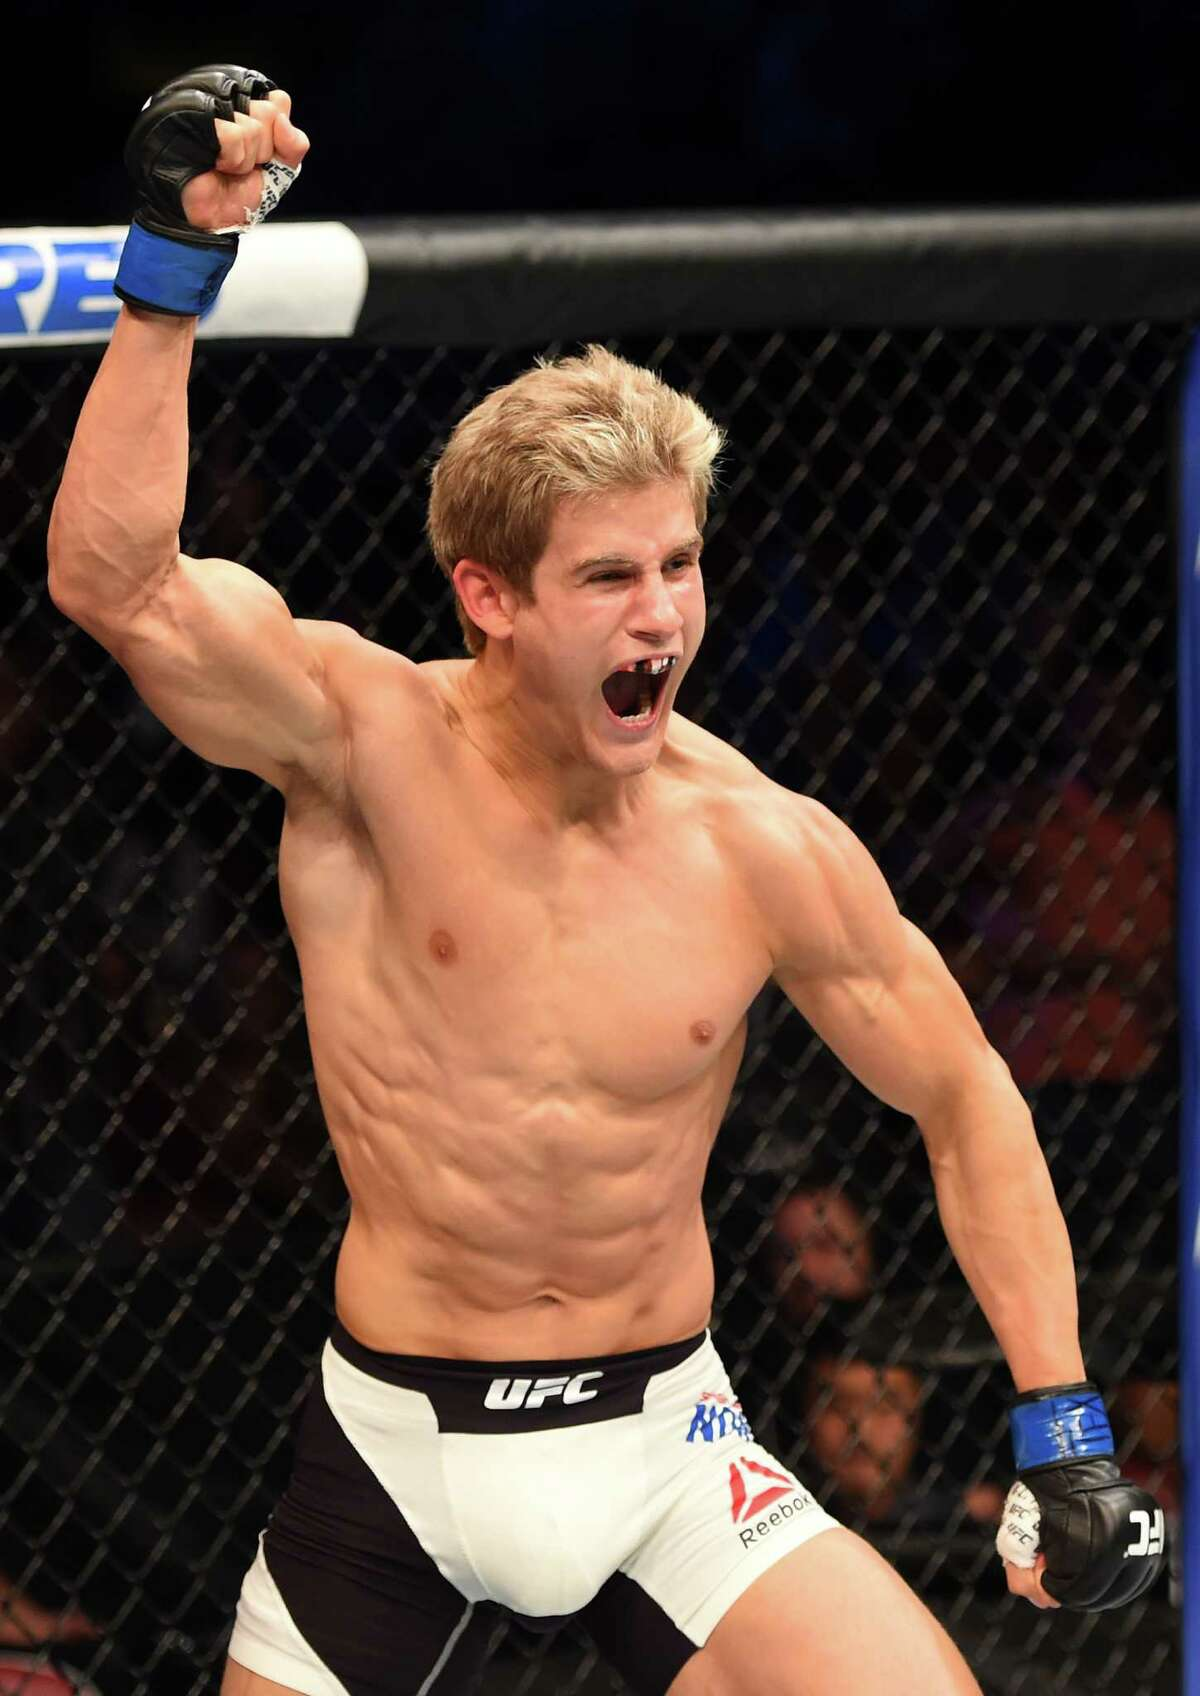 HOUSTON, TX - OCTOBER 03: in their lightweight bout during the UFC 192 event at the Toyota Center on October 3, 2015 in Houston, Texas.